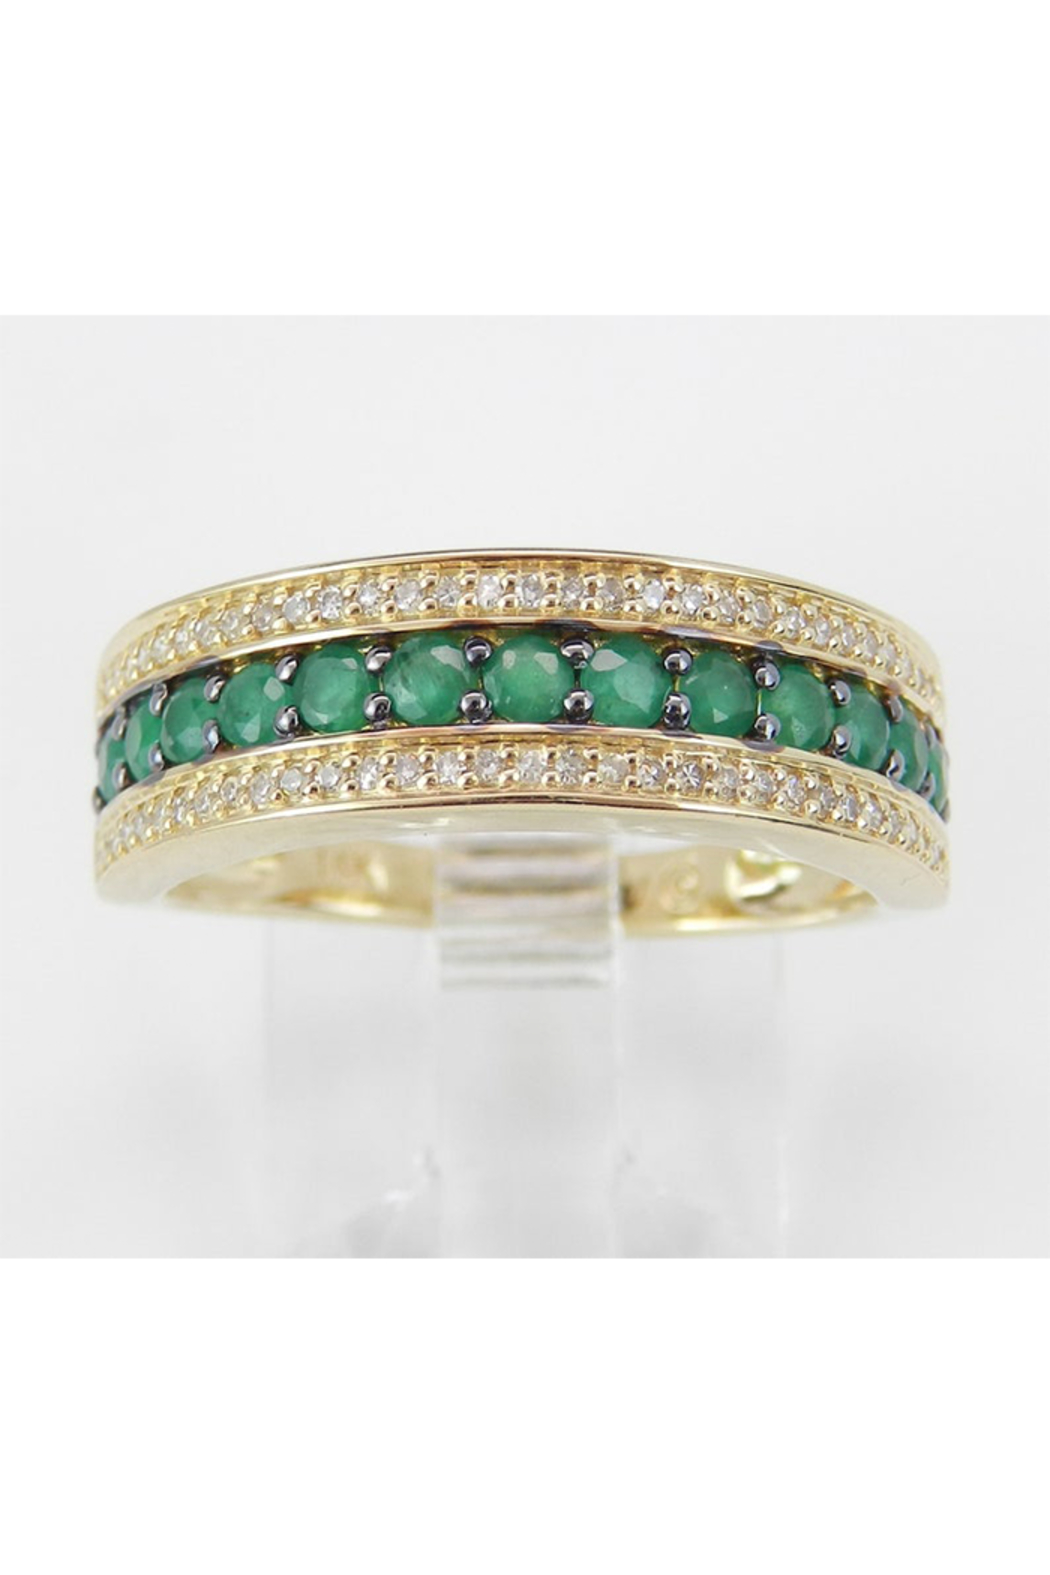 Margolin & Co Diamond and Emerald Ring, Emerald Anniversary Band, Emerald Wedding Ring, 14K Yellow Gold Stackable Ring, Size 6, May Birthstone FREE Sizing - Main Image